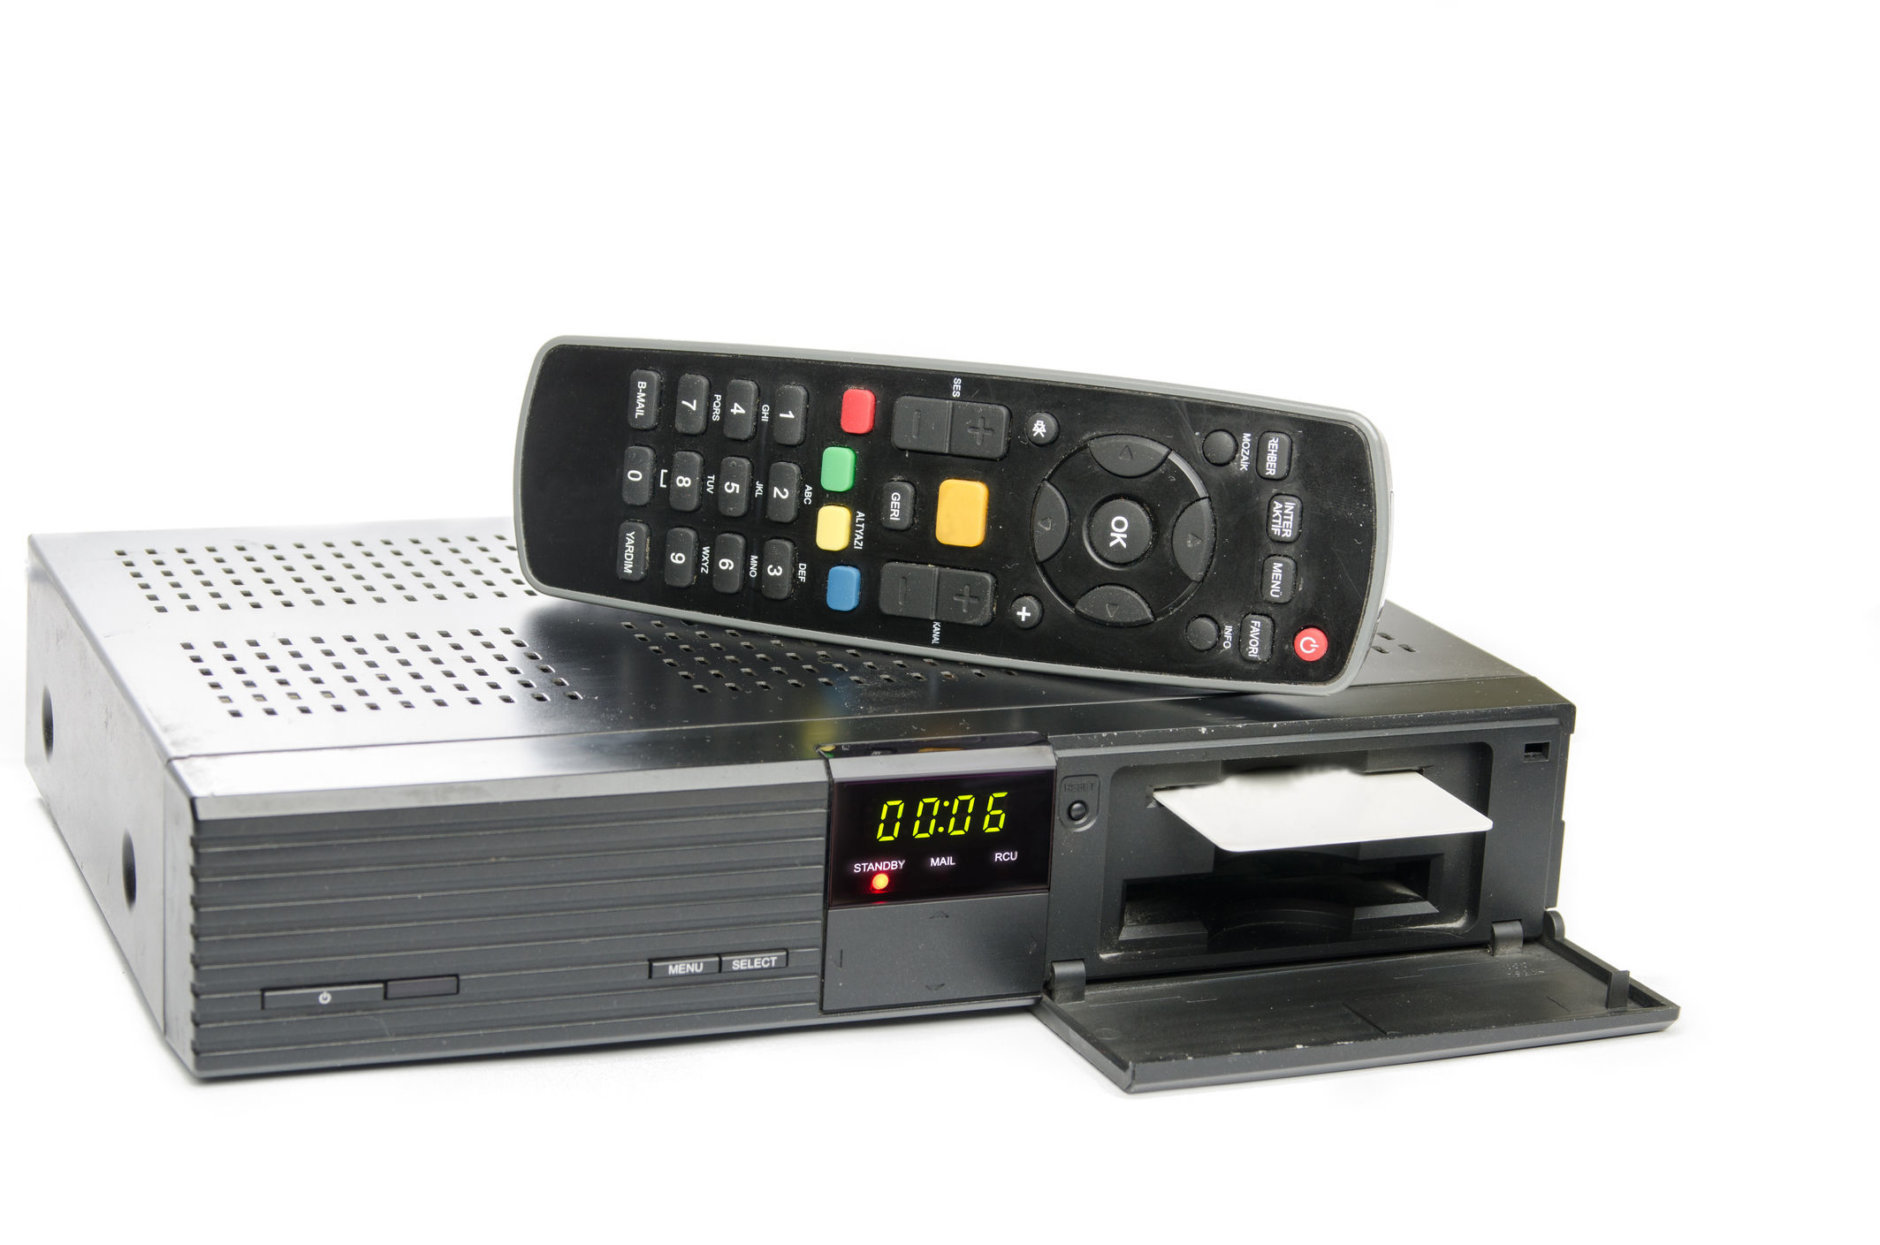 remote and receiver for satellite TV